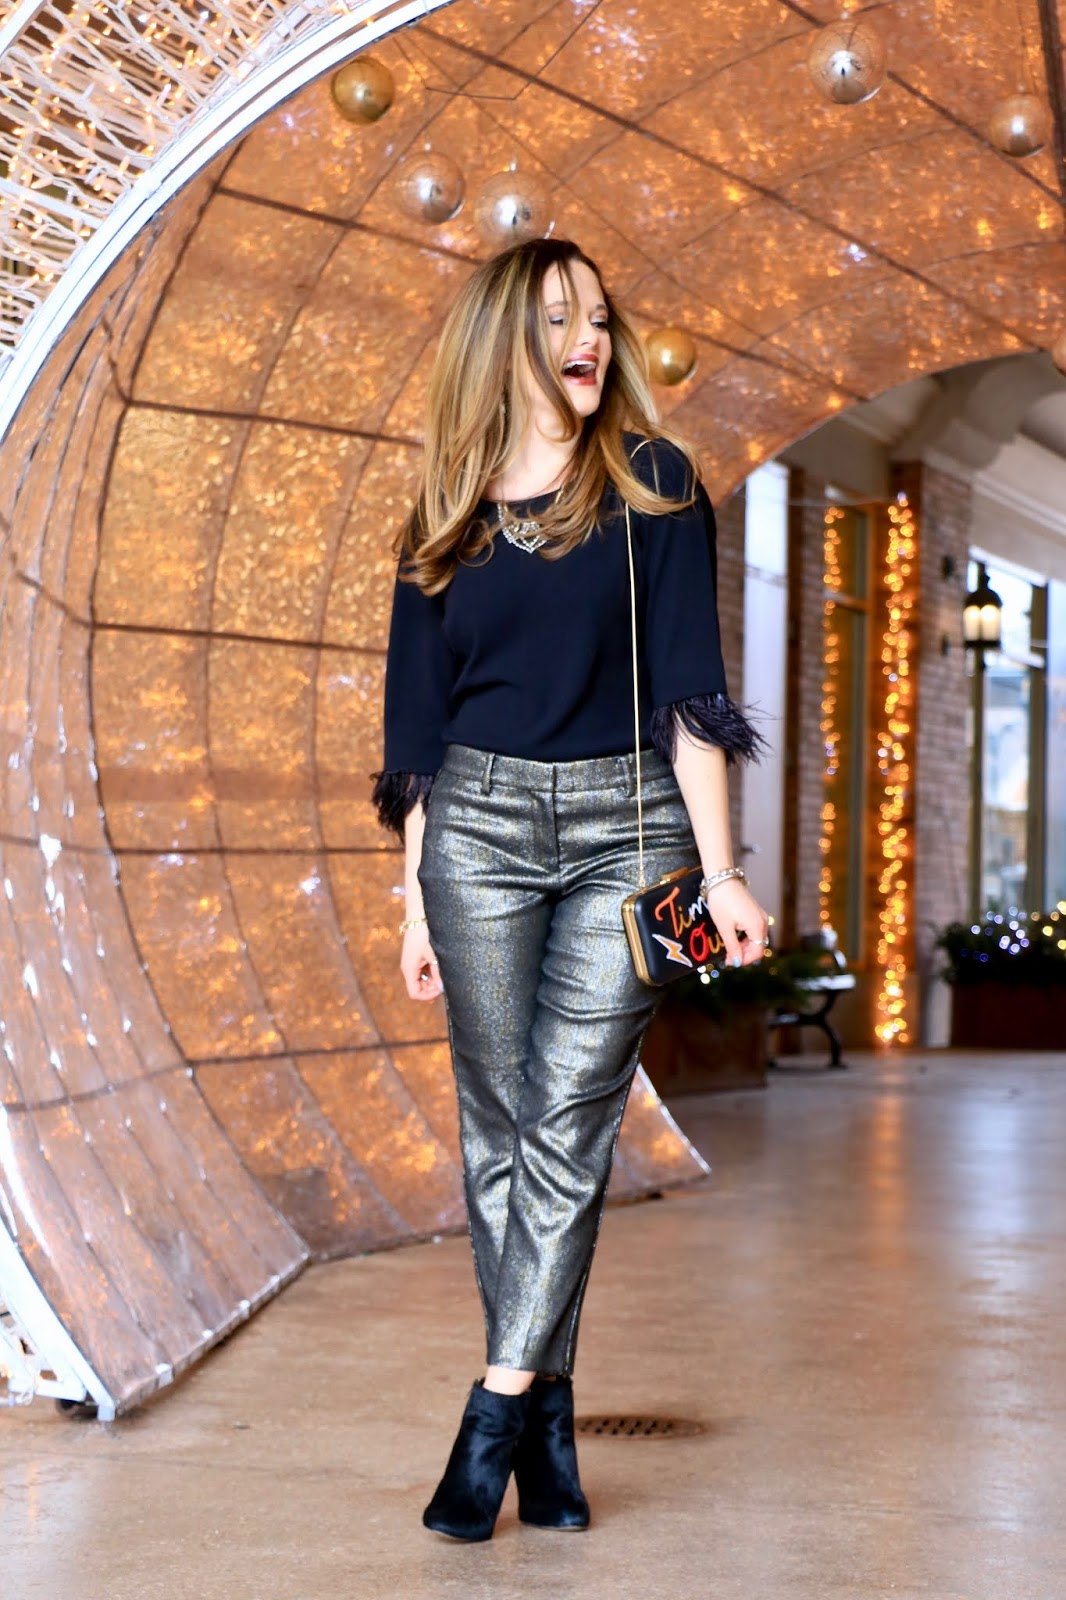 Nyc fashion blogger Kathleen Harper's nye outfit ideas